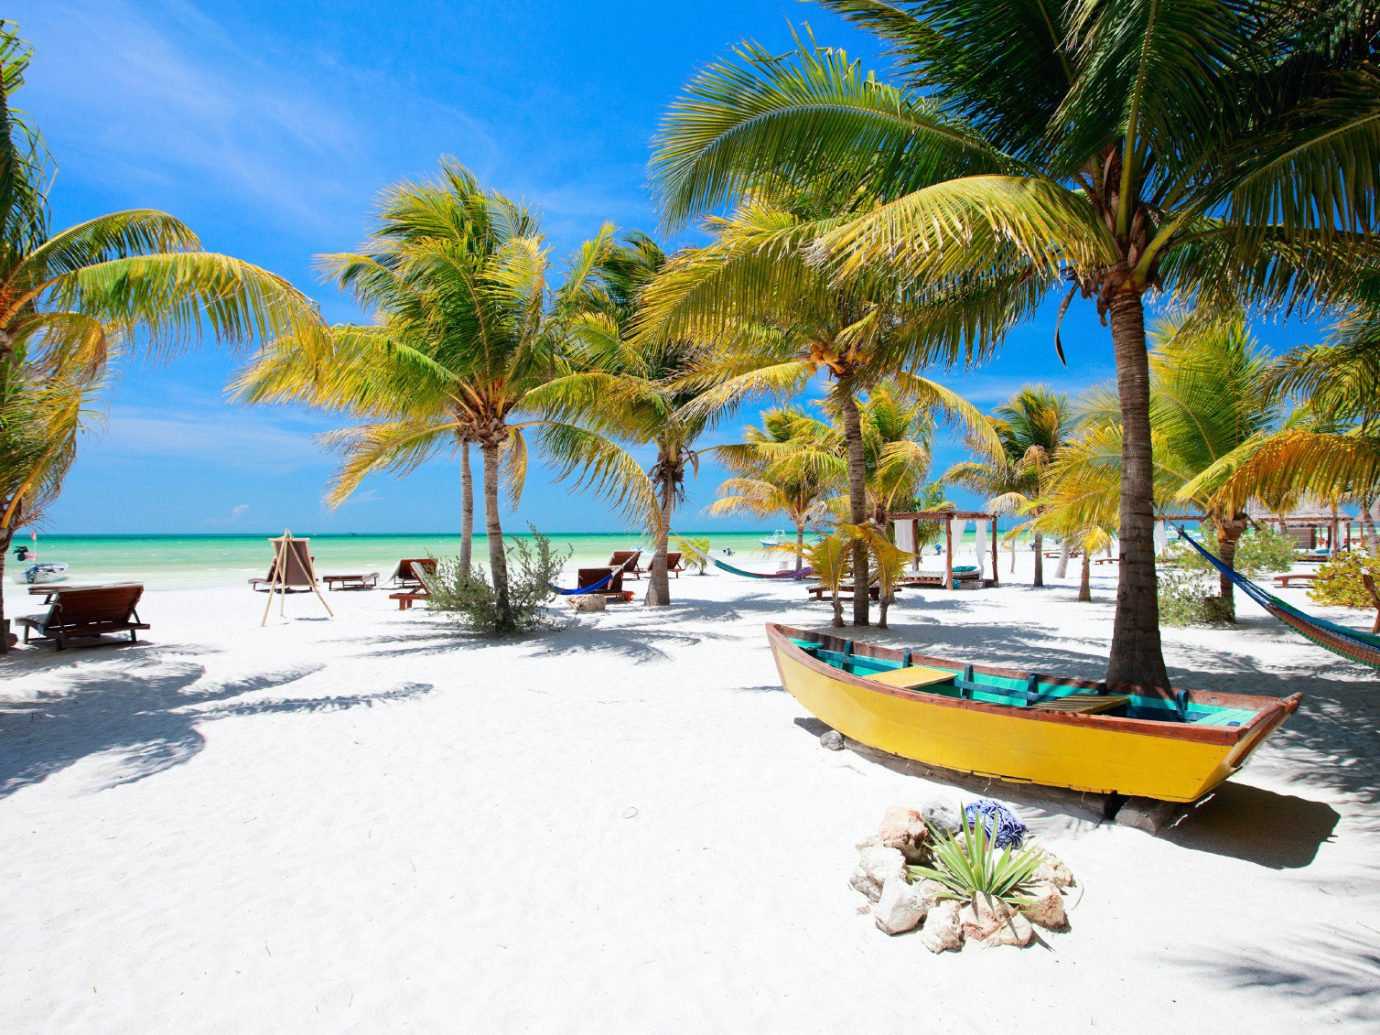 Mexico Trip Ideas Weekend Getaways tree outdoor sky Beach water palm leisure Resort caribbean vacation arecales Sea Ocean Pool Lagoon bay tropics Island plant shore sandy lined